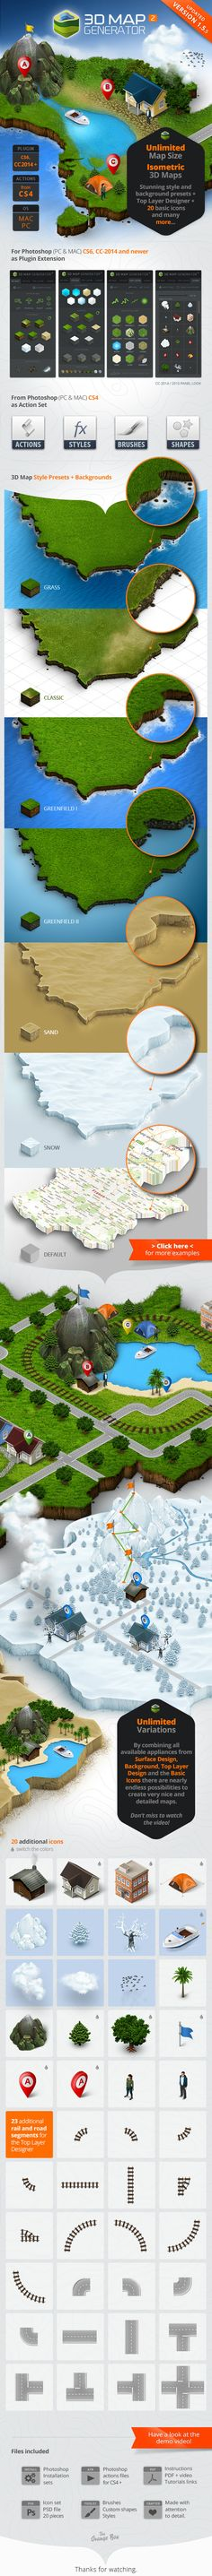 ▸ [Get Free]◴ Map Generator 2 - Isometric Continent Country Creator Direction Earth Best Photoshop Actions, Effects Photoshop, Adobe Photoshop, Photoshop Ideas, Creative Photoshop, Text Effects, Map Design, Graphic Design, Dragons